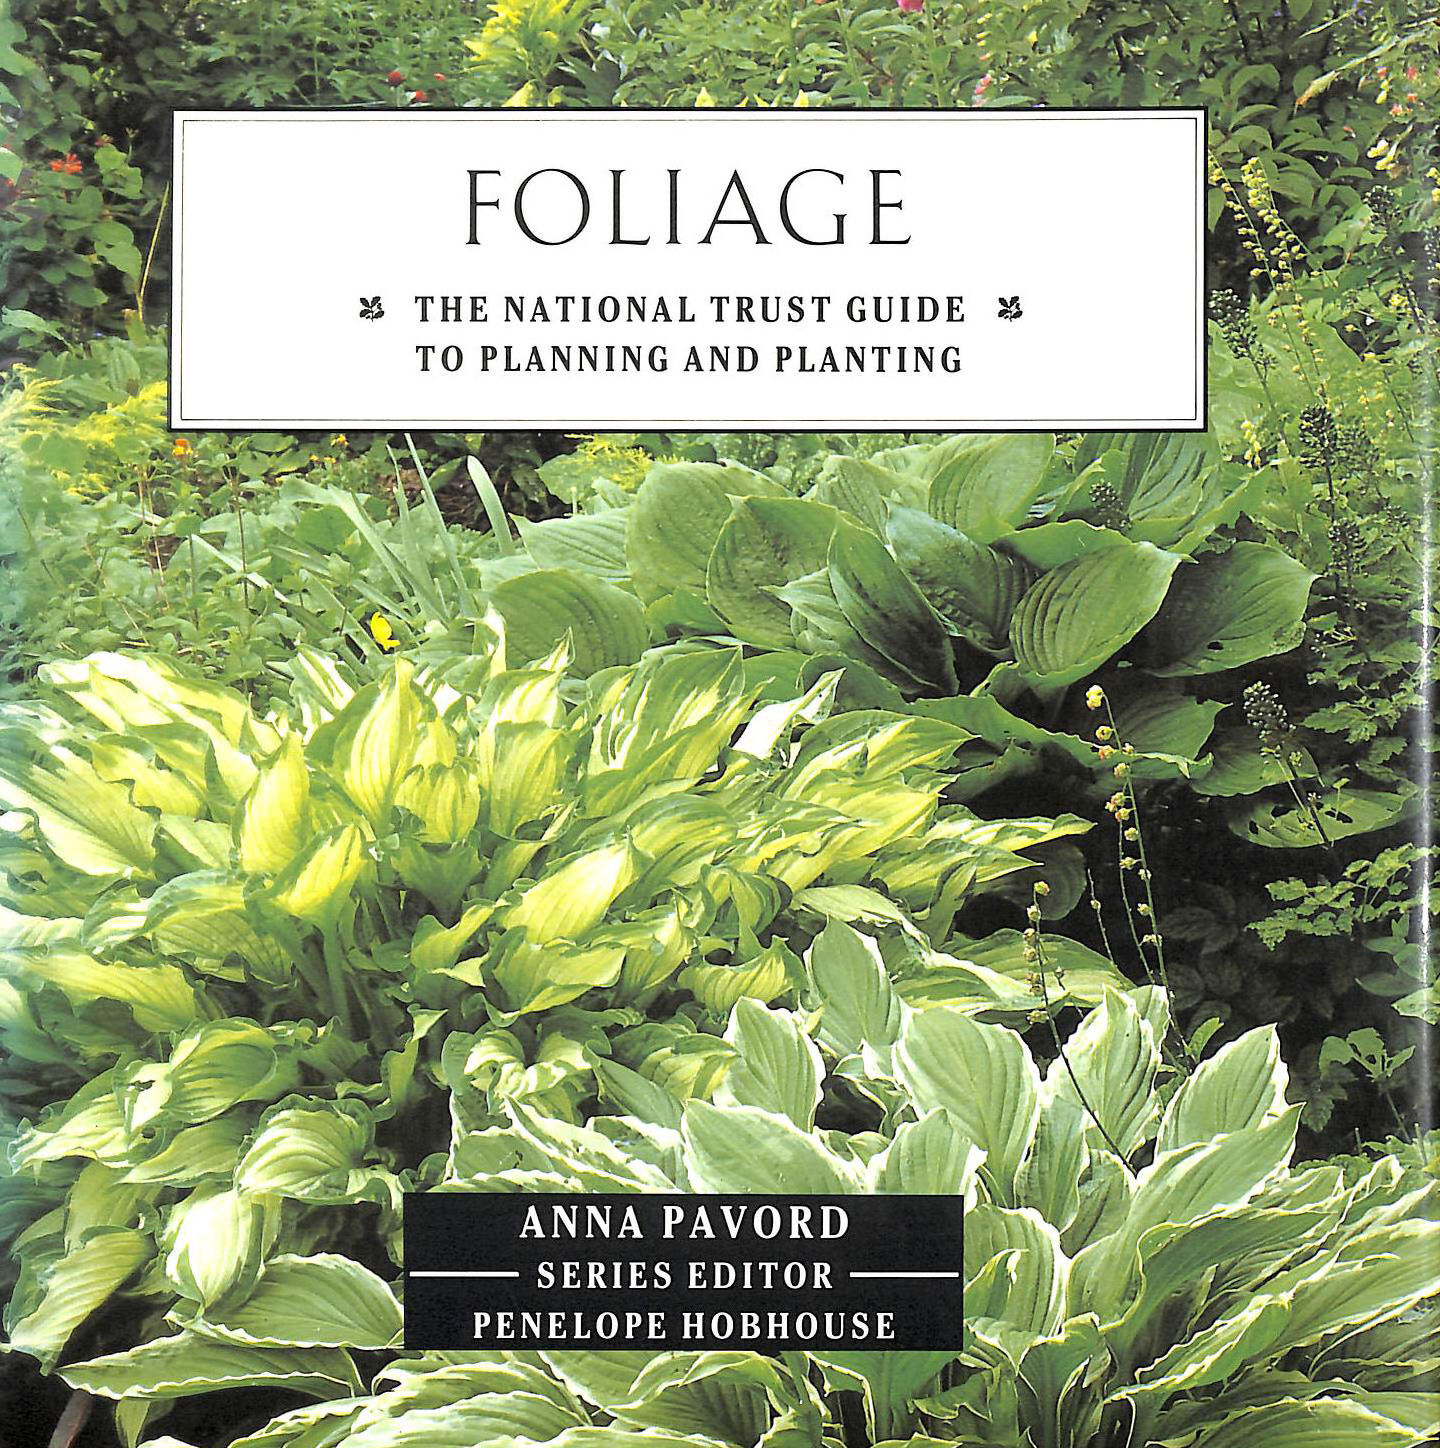 Image for Foliage Nt Gde Planting & Pla (National Trust Gardening Guides)